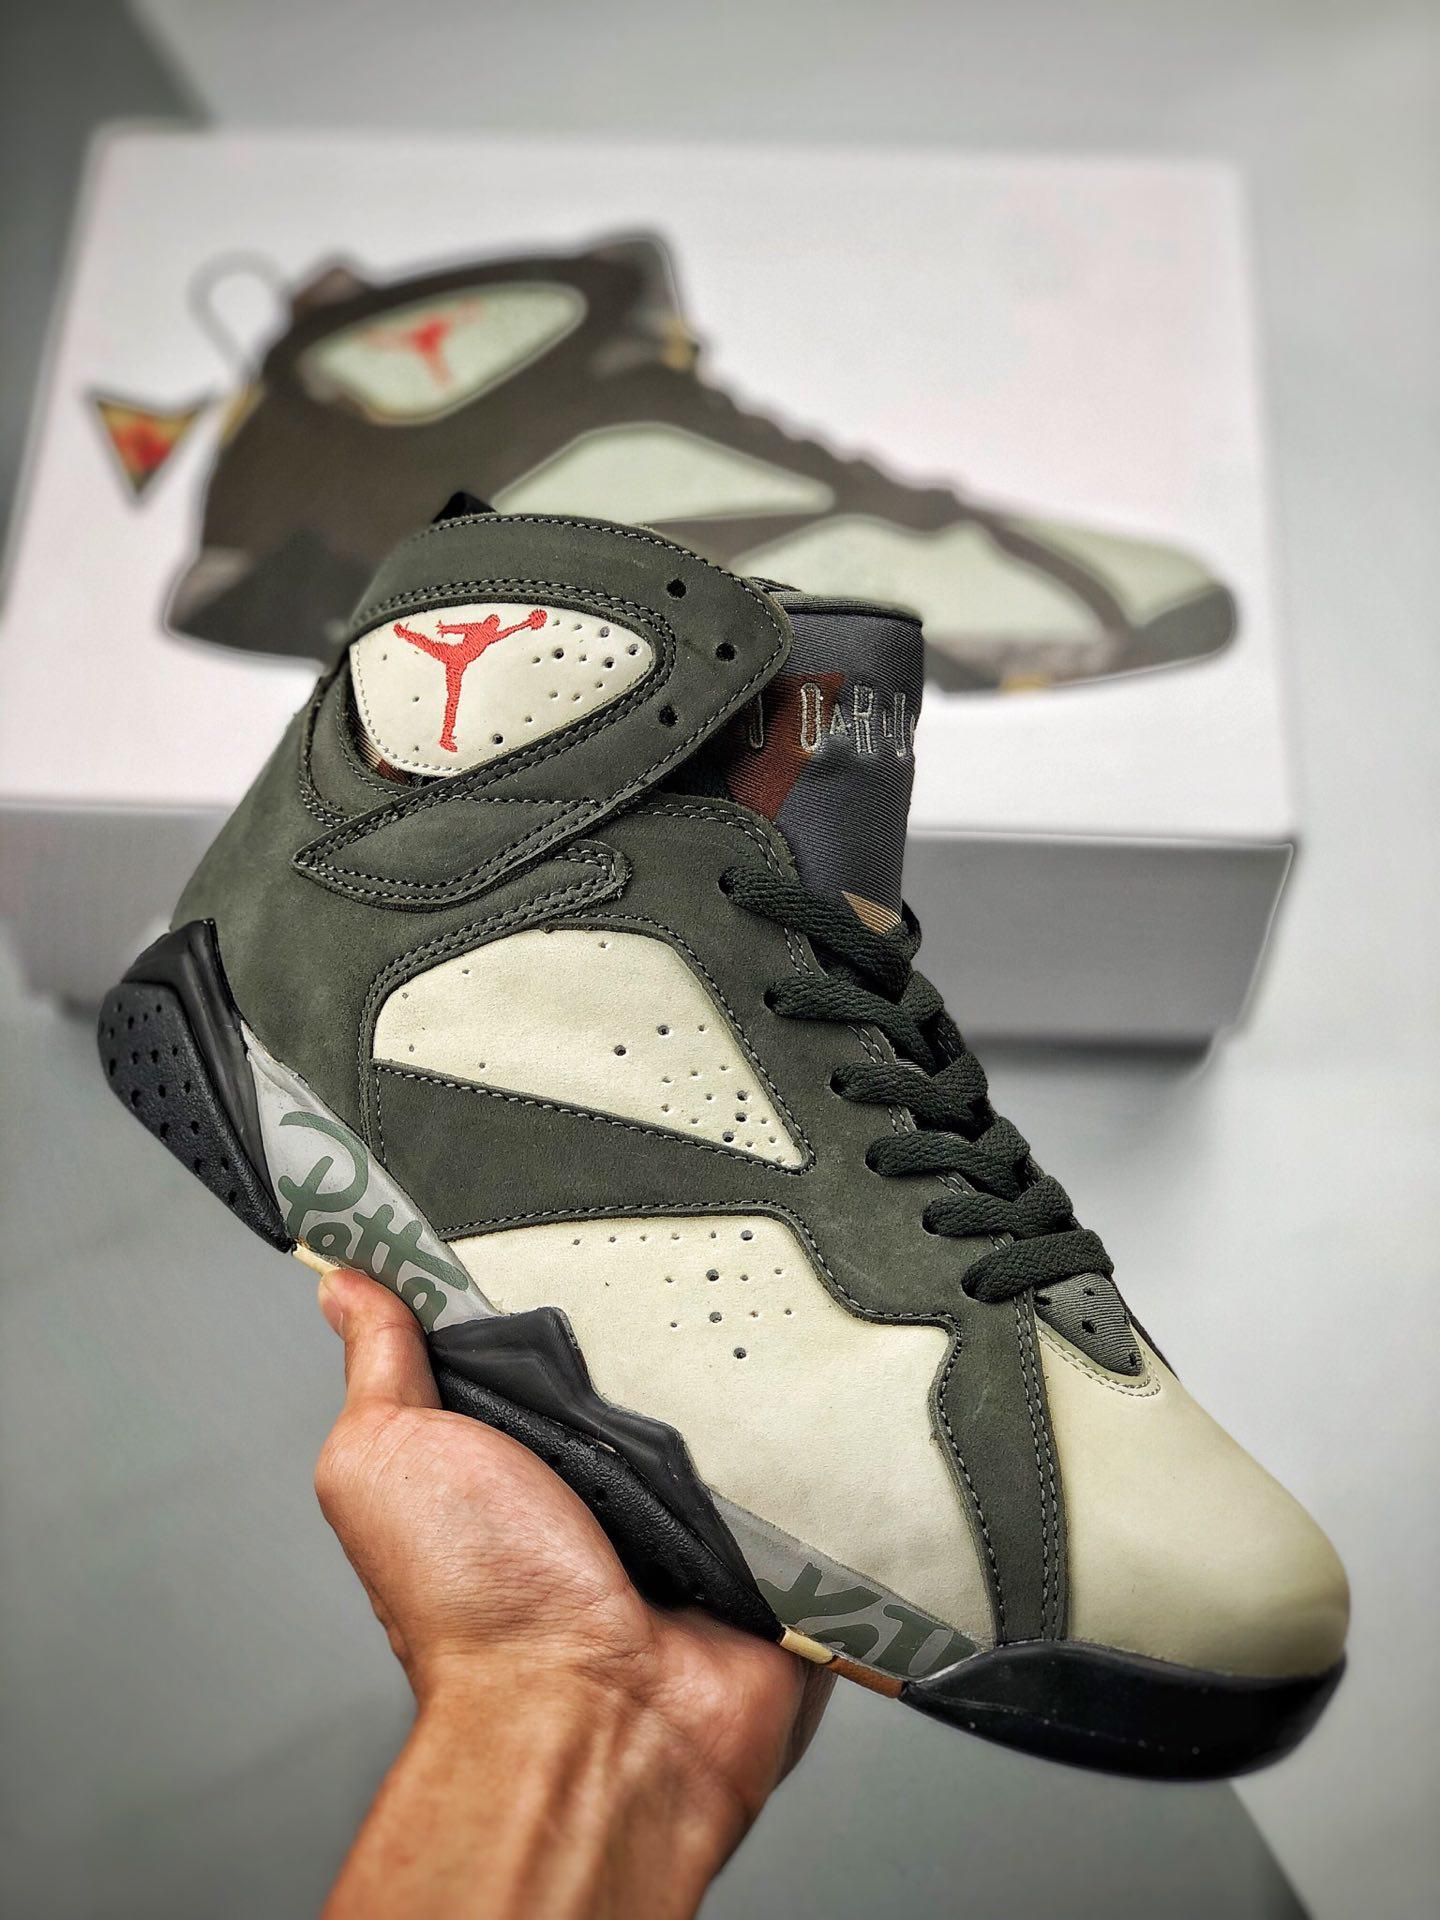 Nike Air Jordan 7 x Patta Retro OG SP Shimme AT3375 100